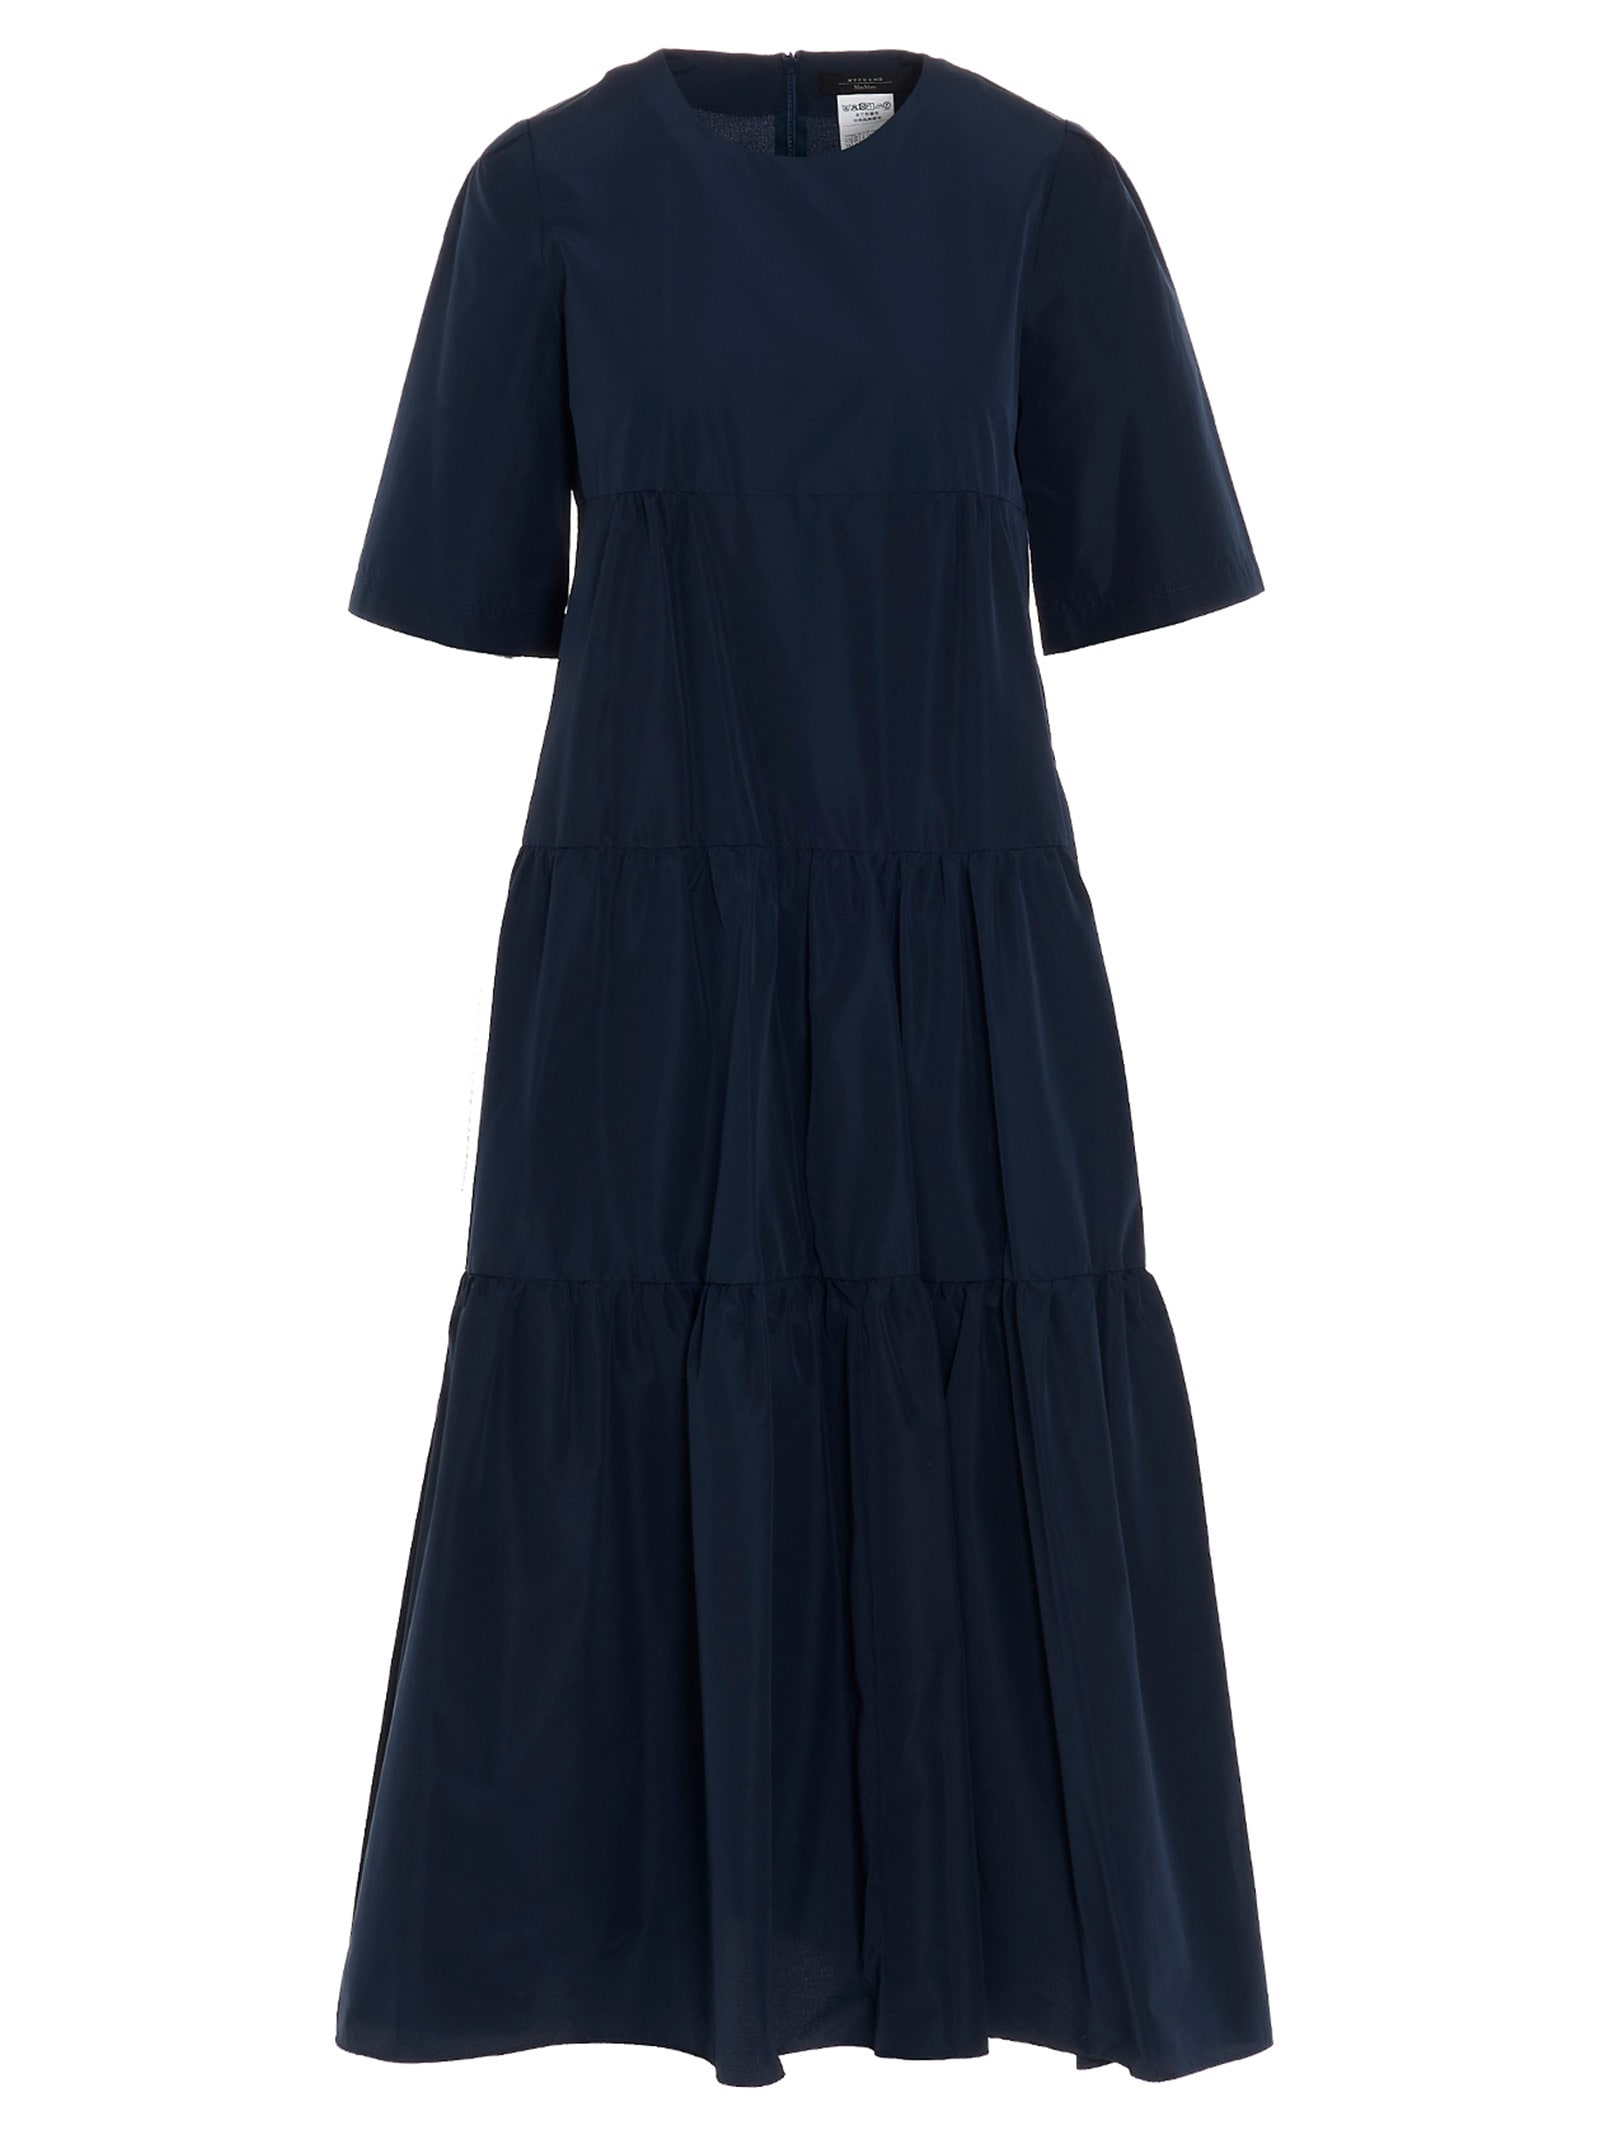 Weekend Max Mara UNCINO DRESS